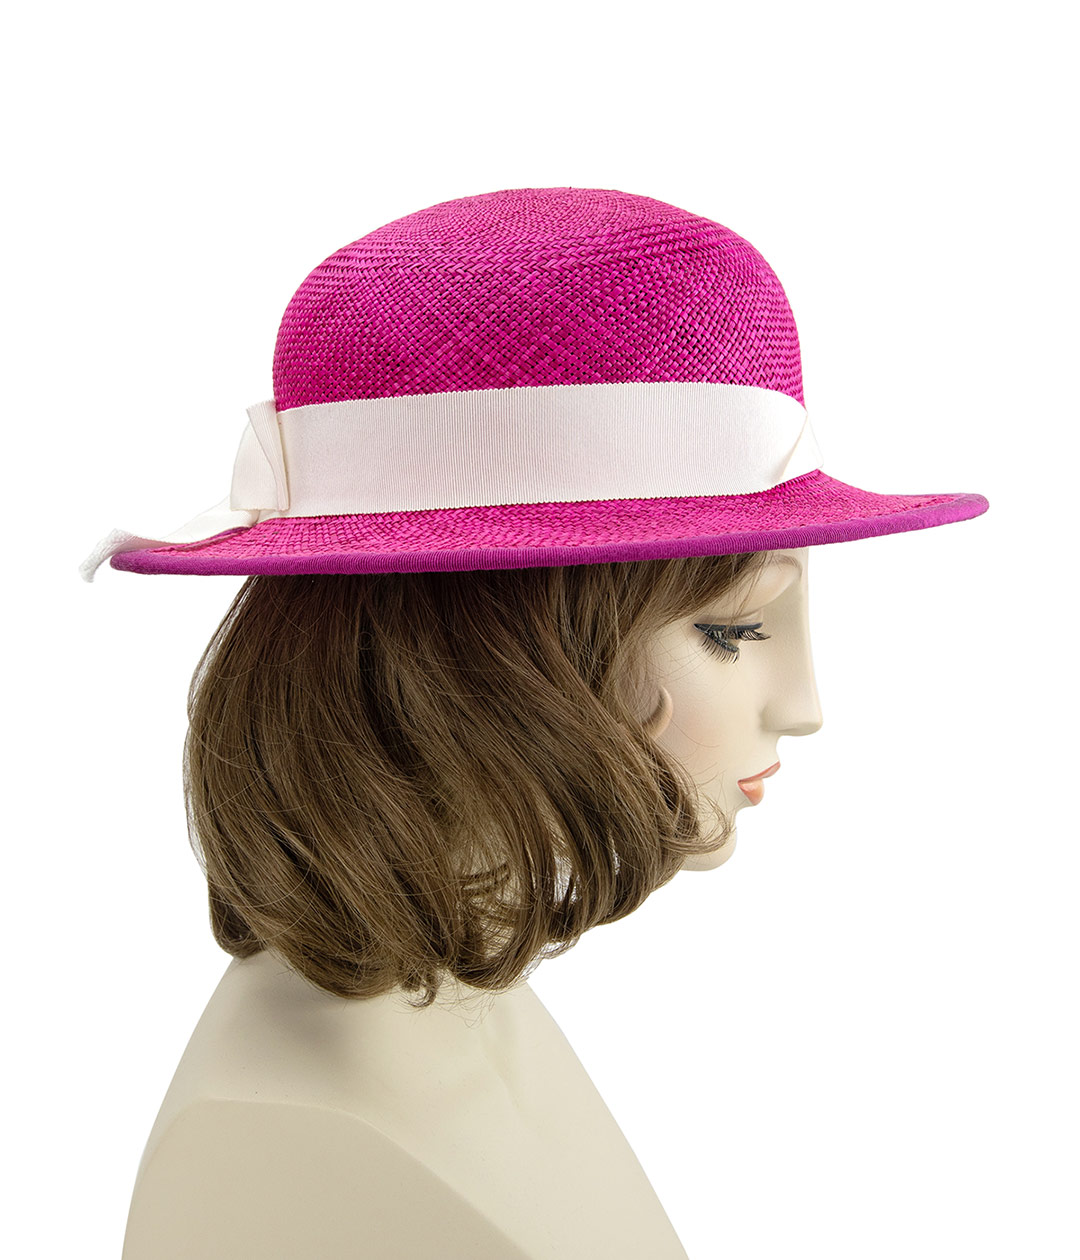 hot pink straw hat on a mannequin head